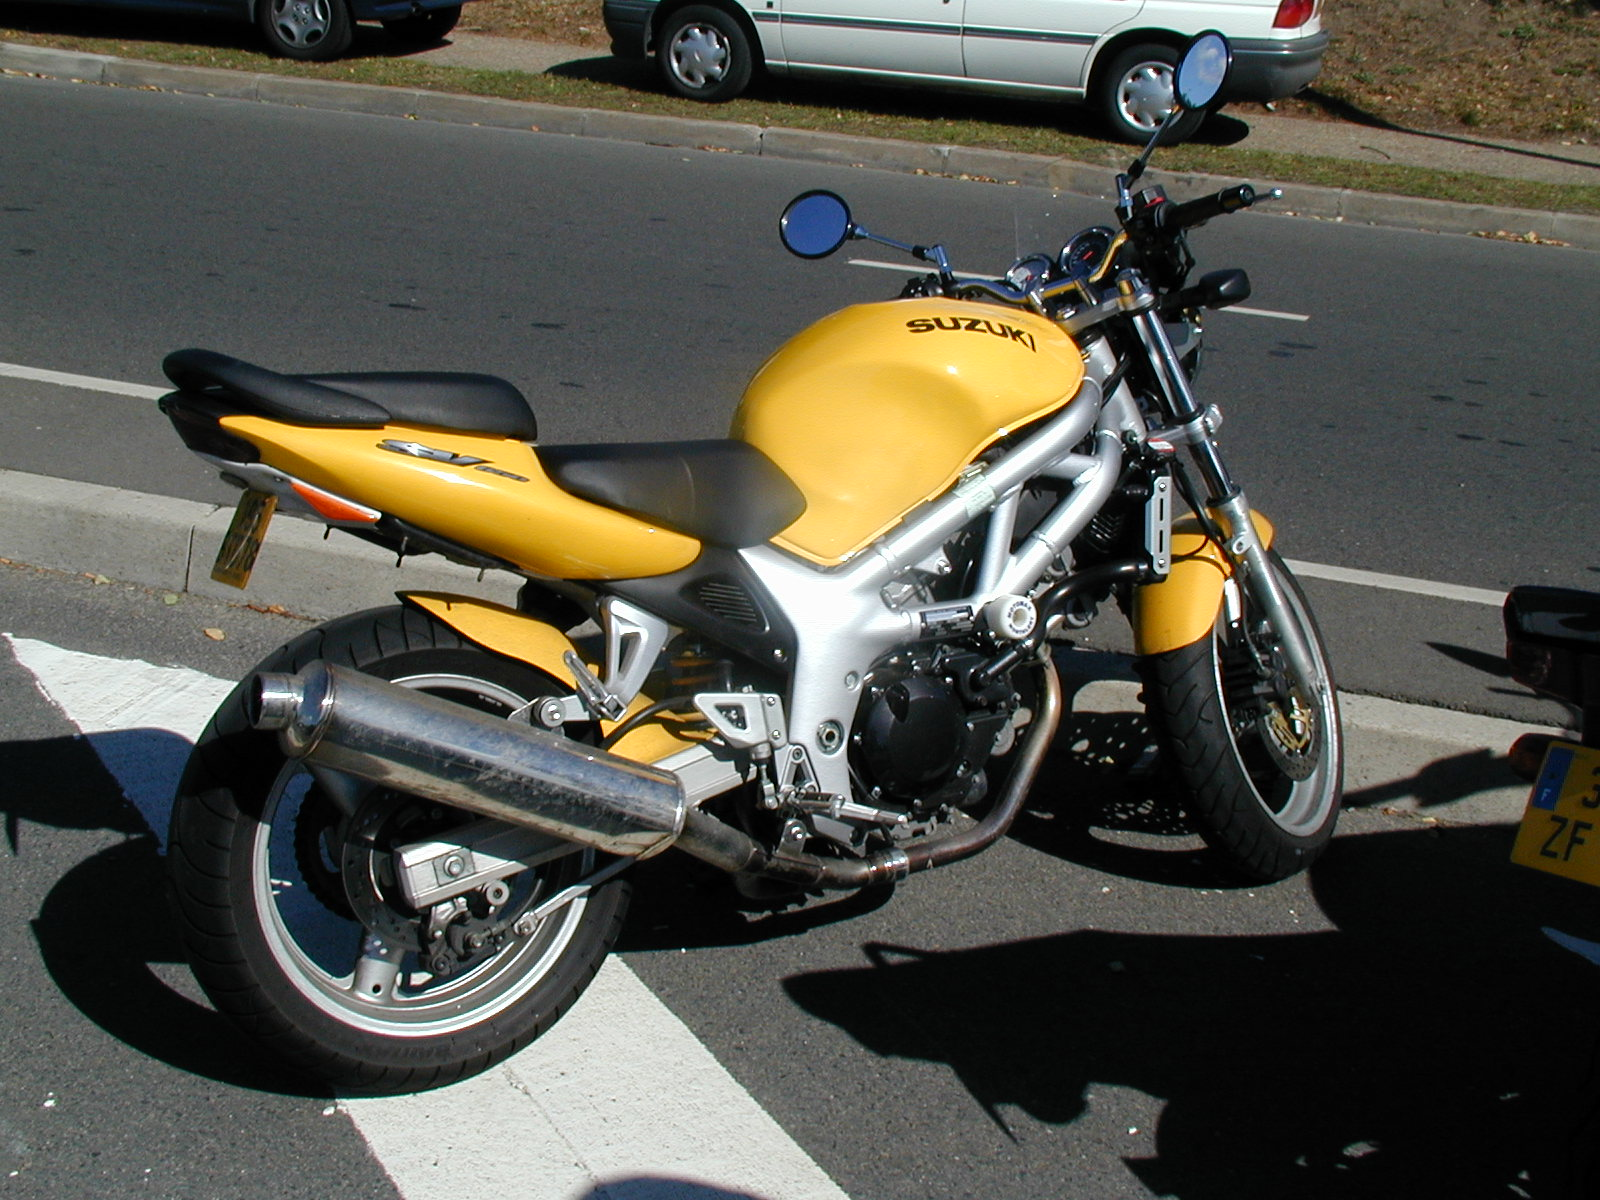 File:Suzuki 650-sv-1.jpg - Wikimedia Commons